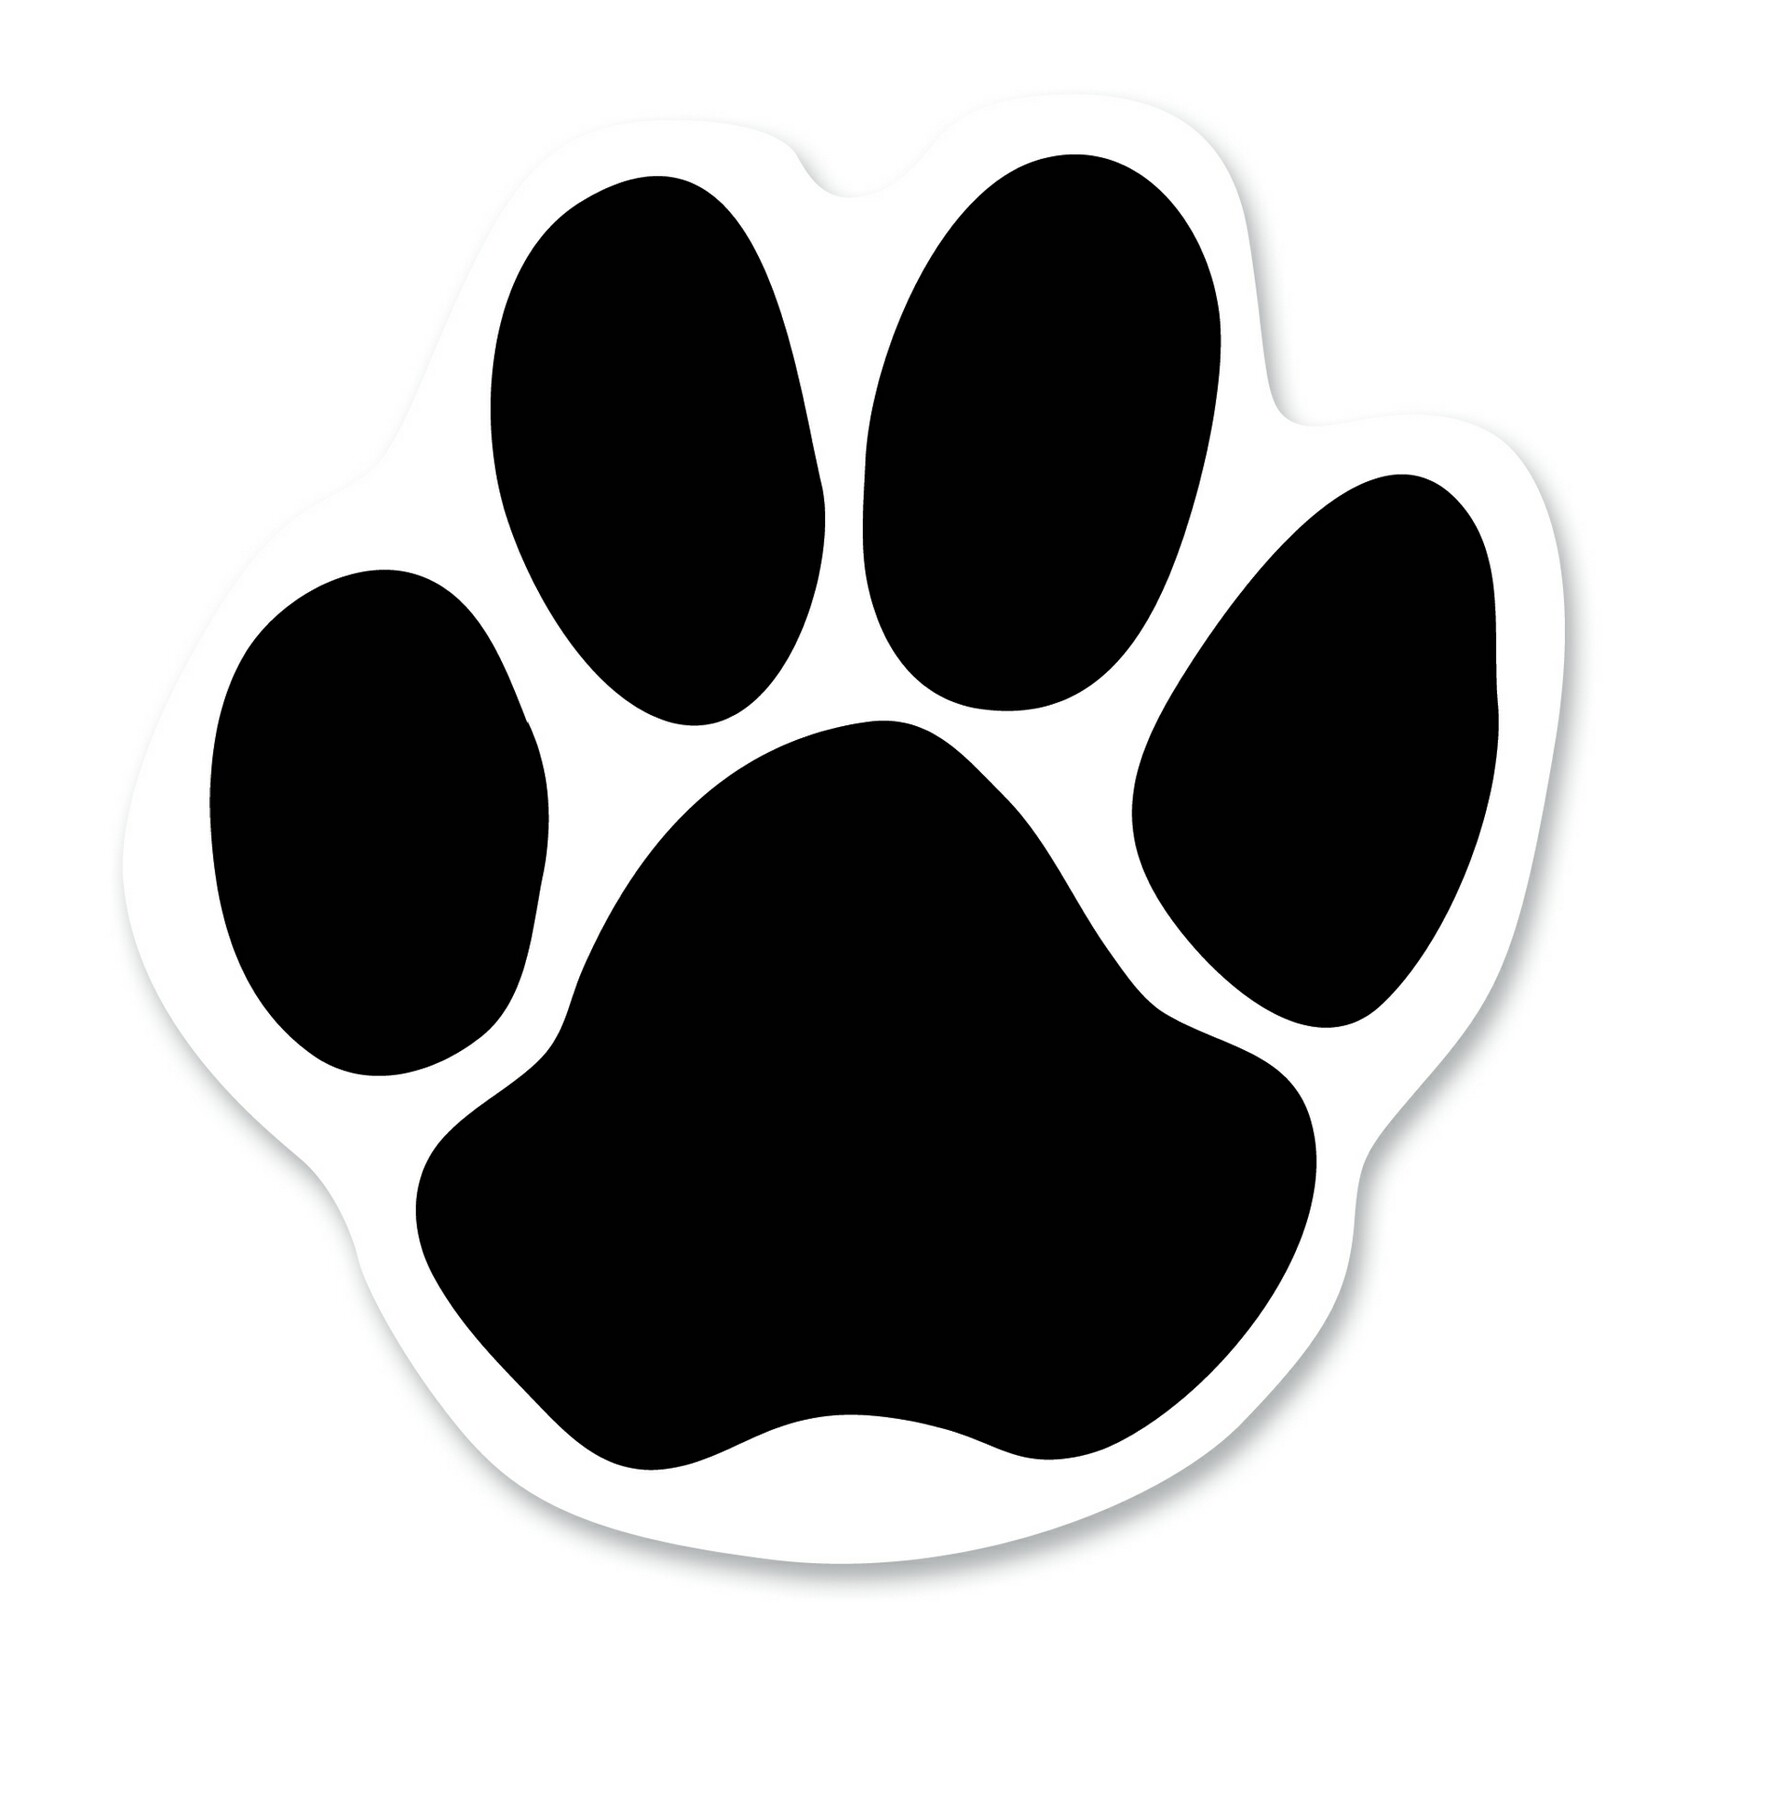 Dog paw print outline free download clip art.